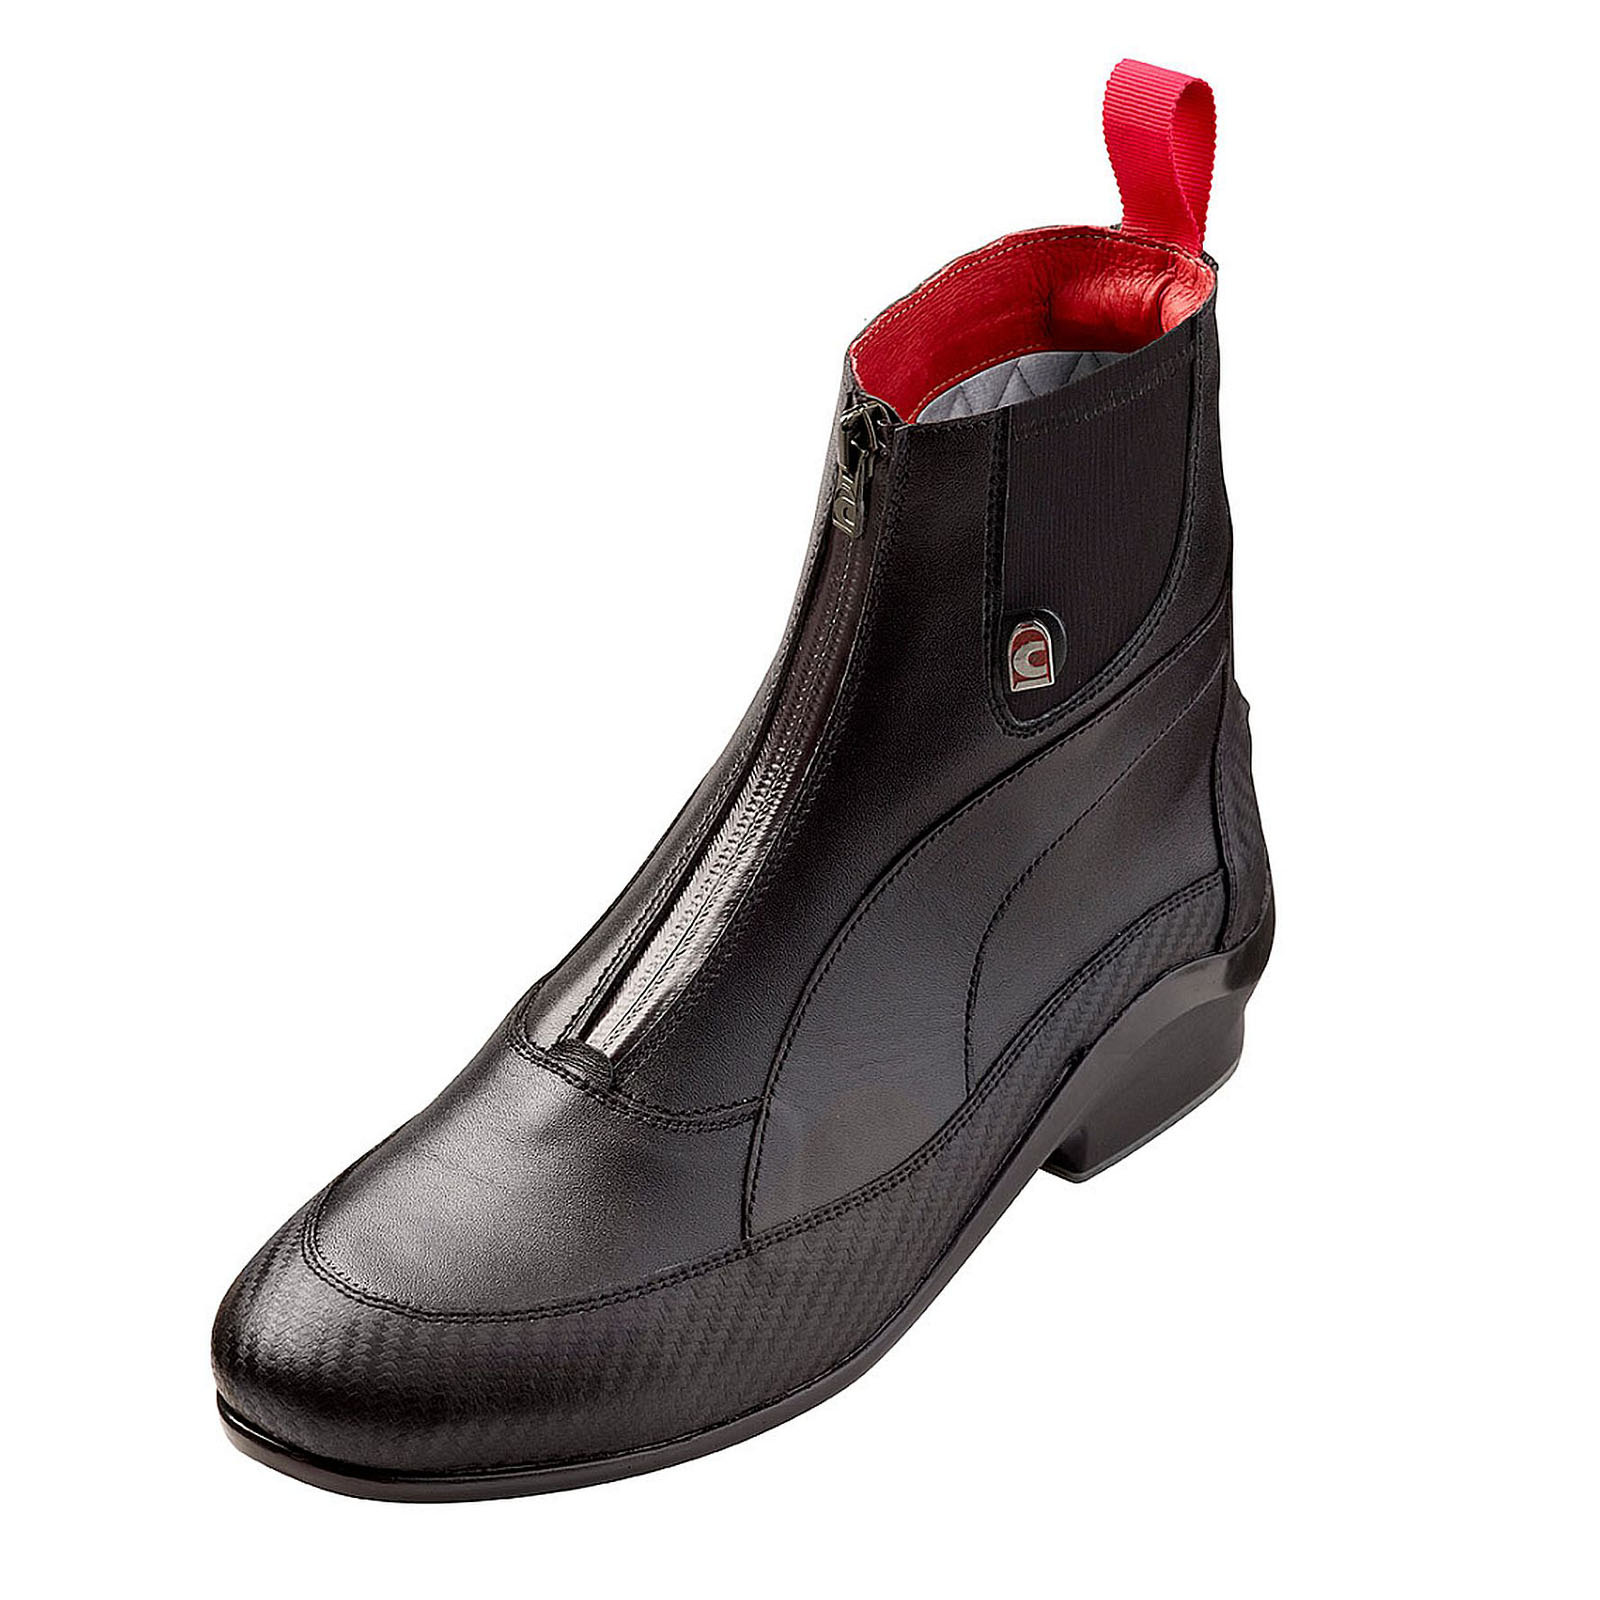 Cavallo Carbon Snow Jodhpurs